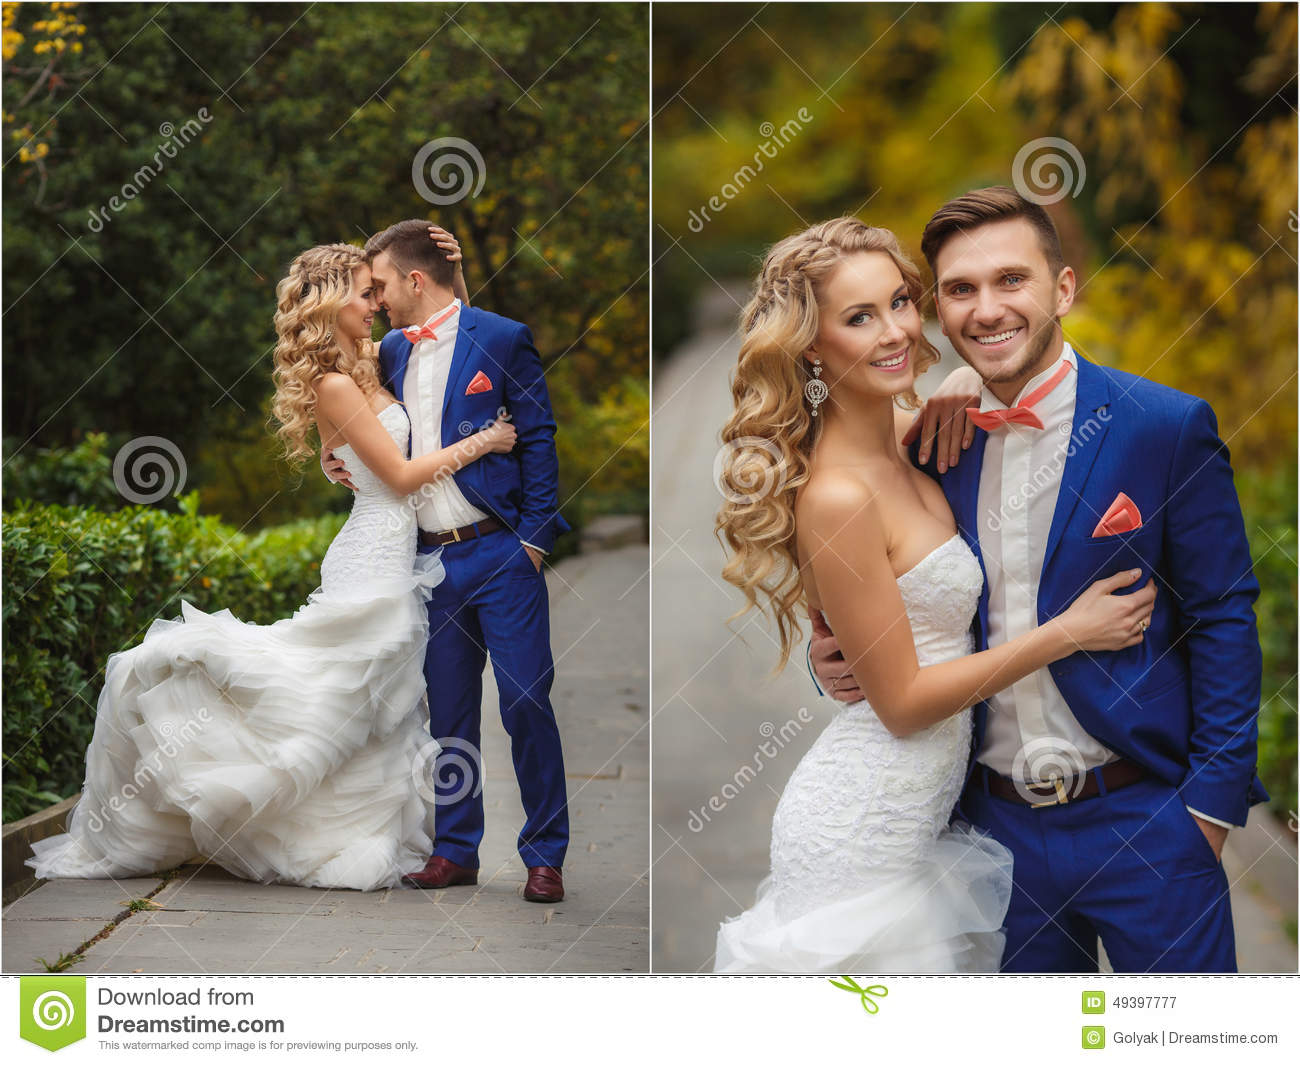 Ukrainian Wedding Bride And Groom 96